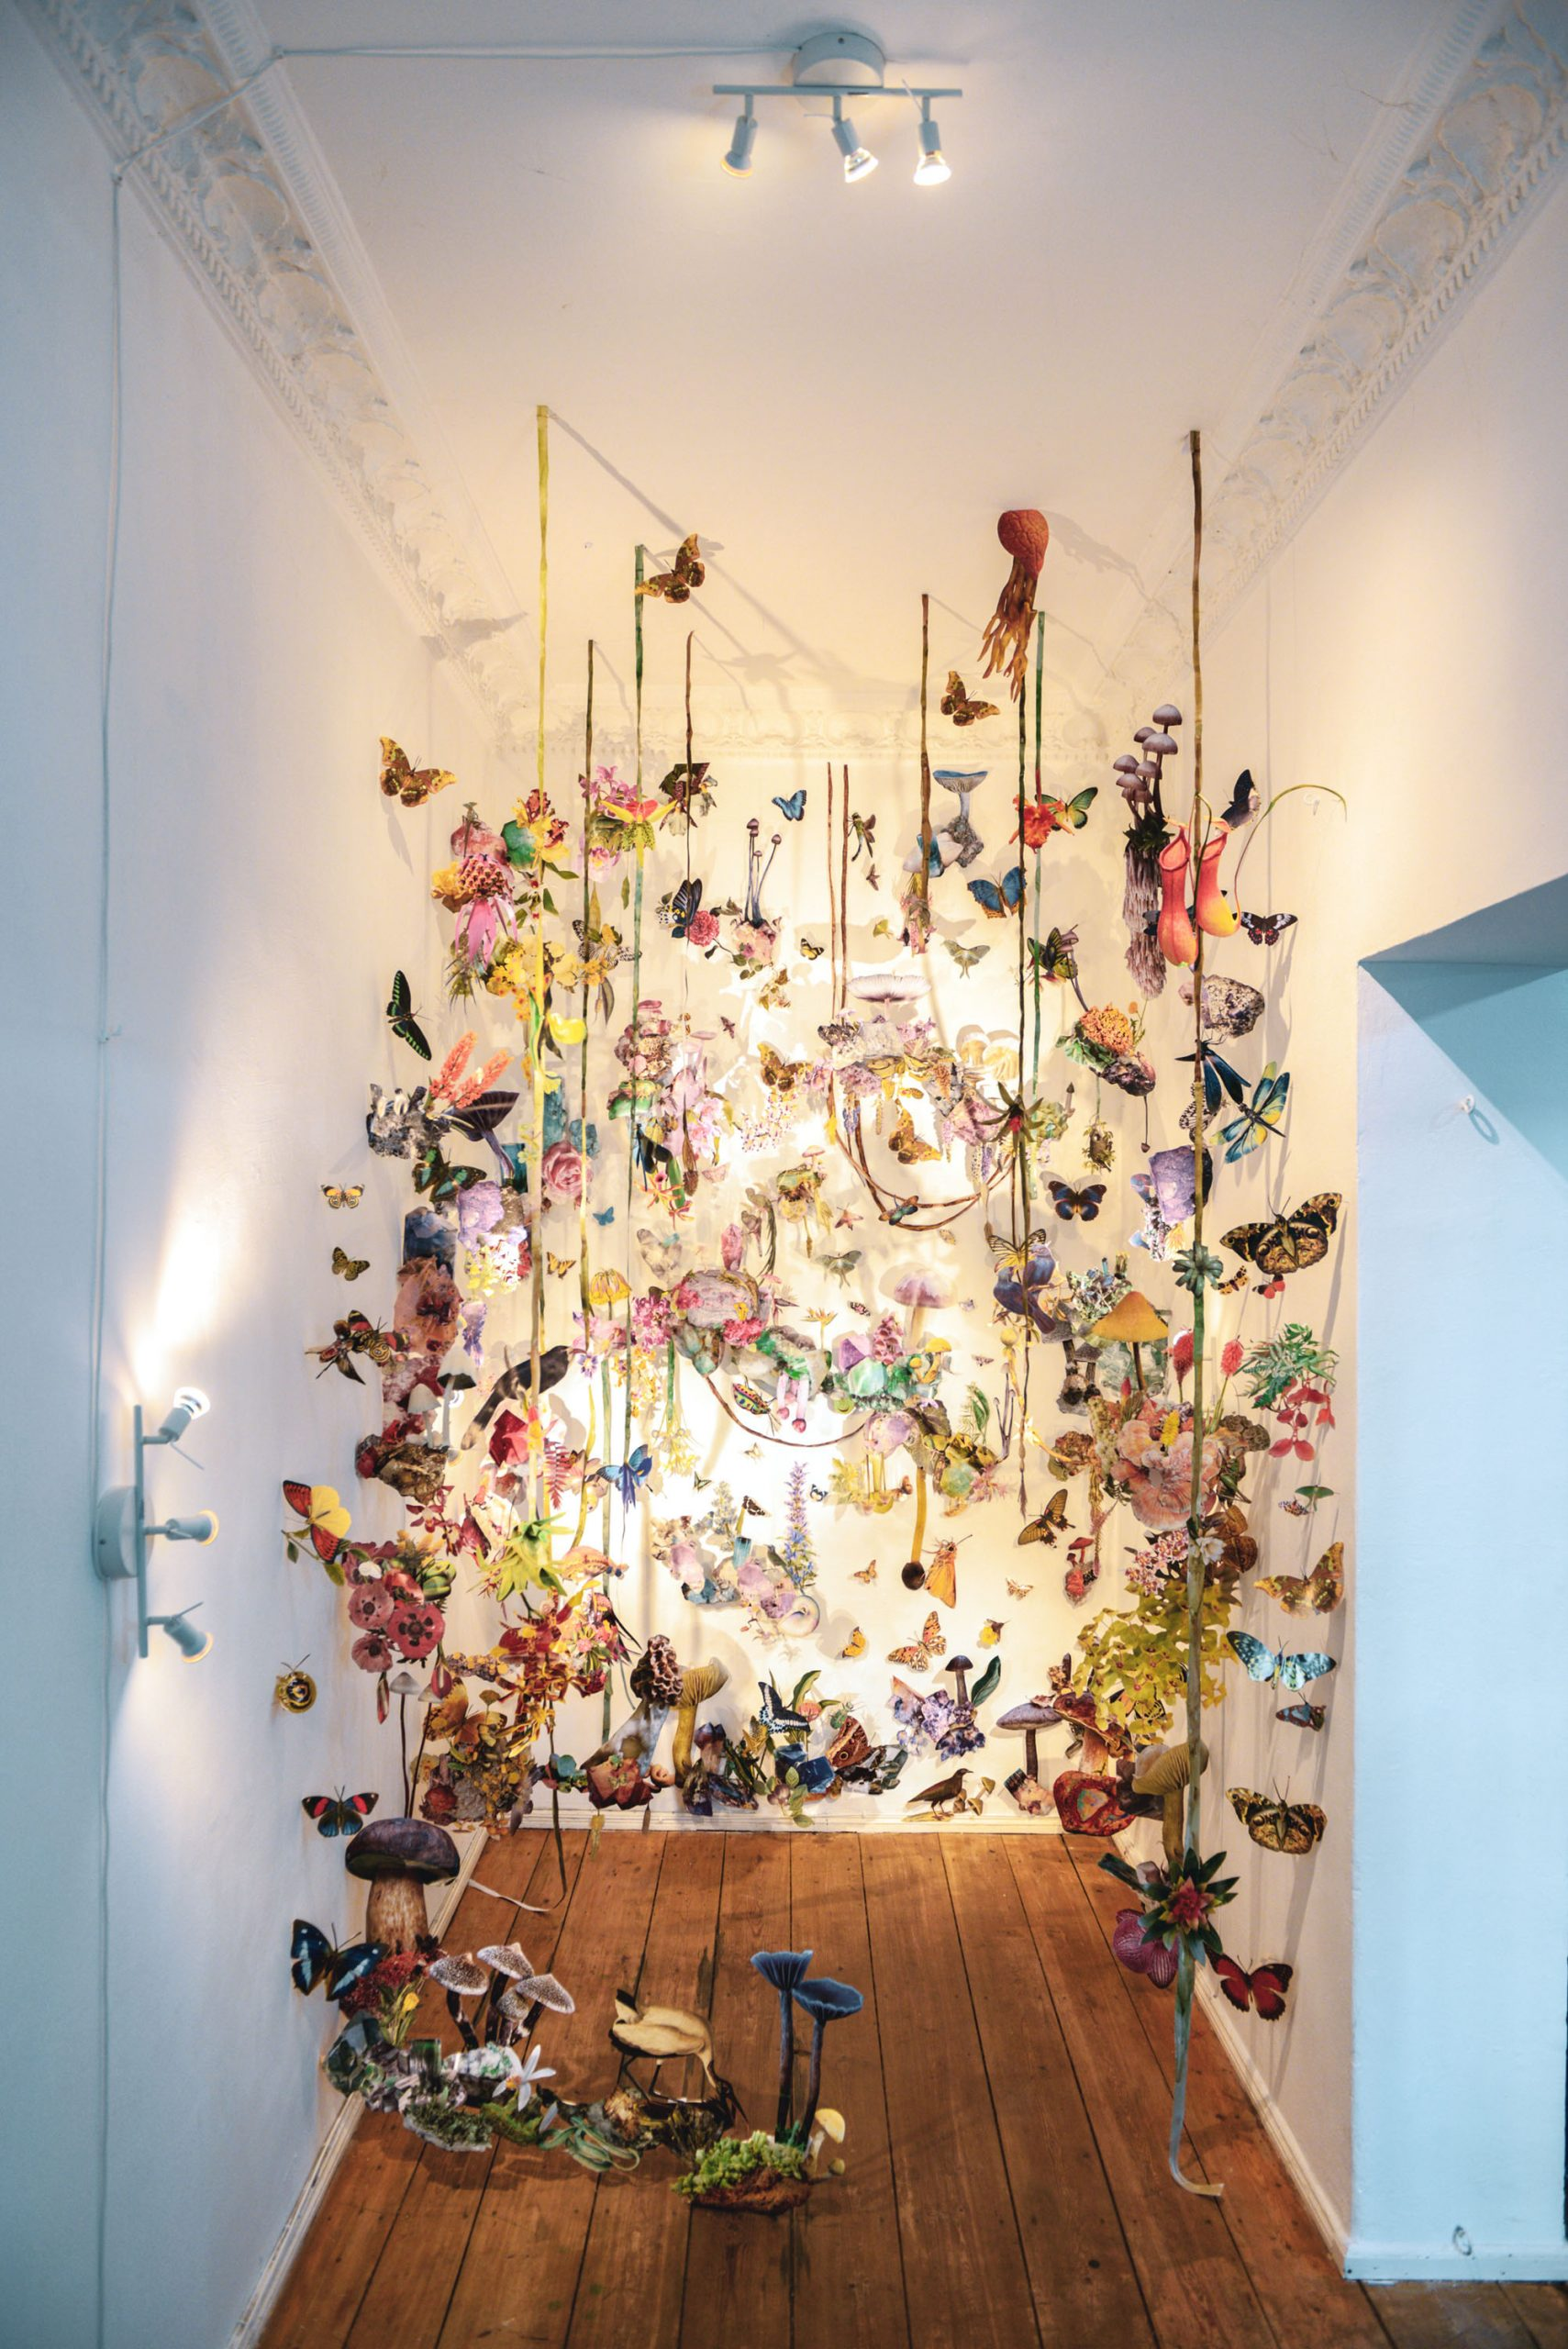 collage installation art featuring various biodiversity figures